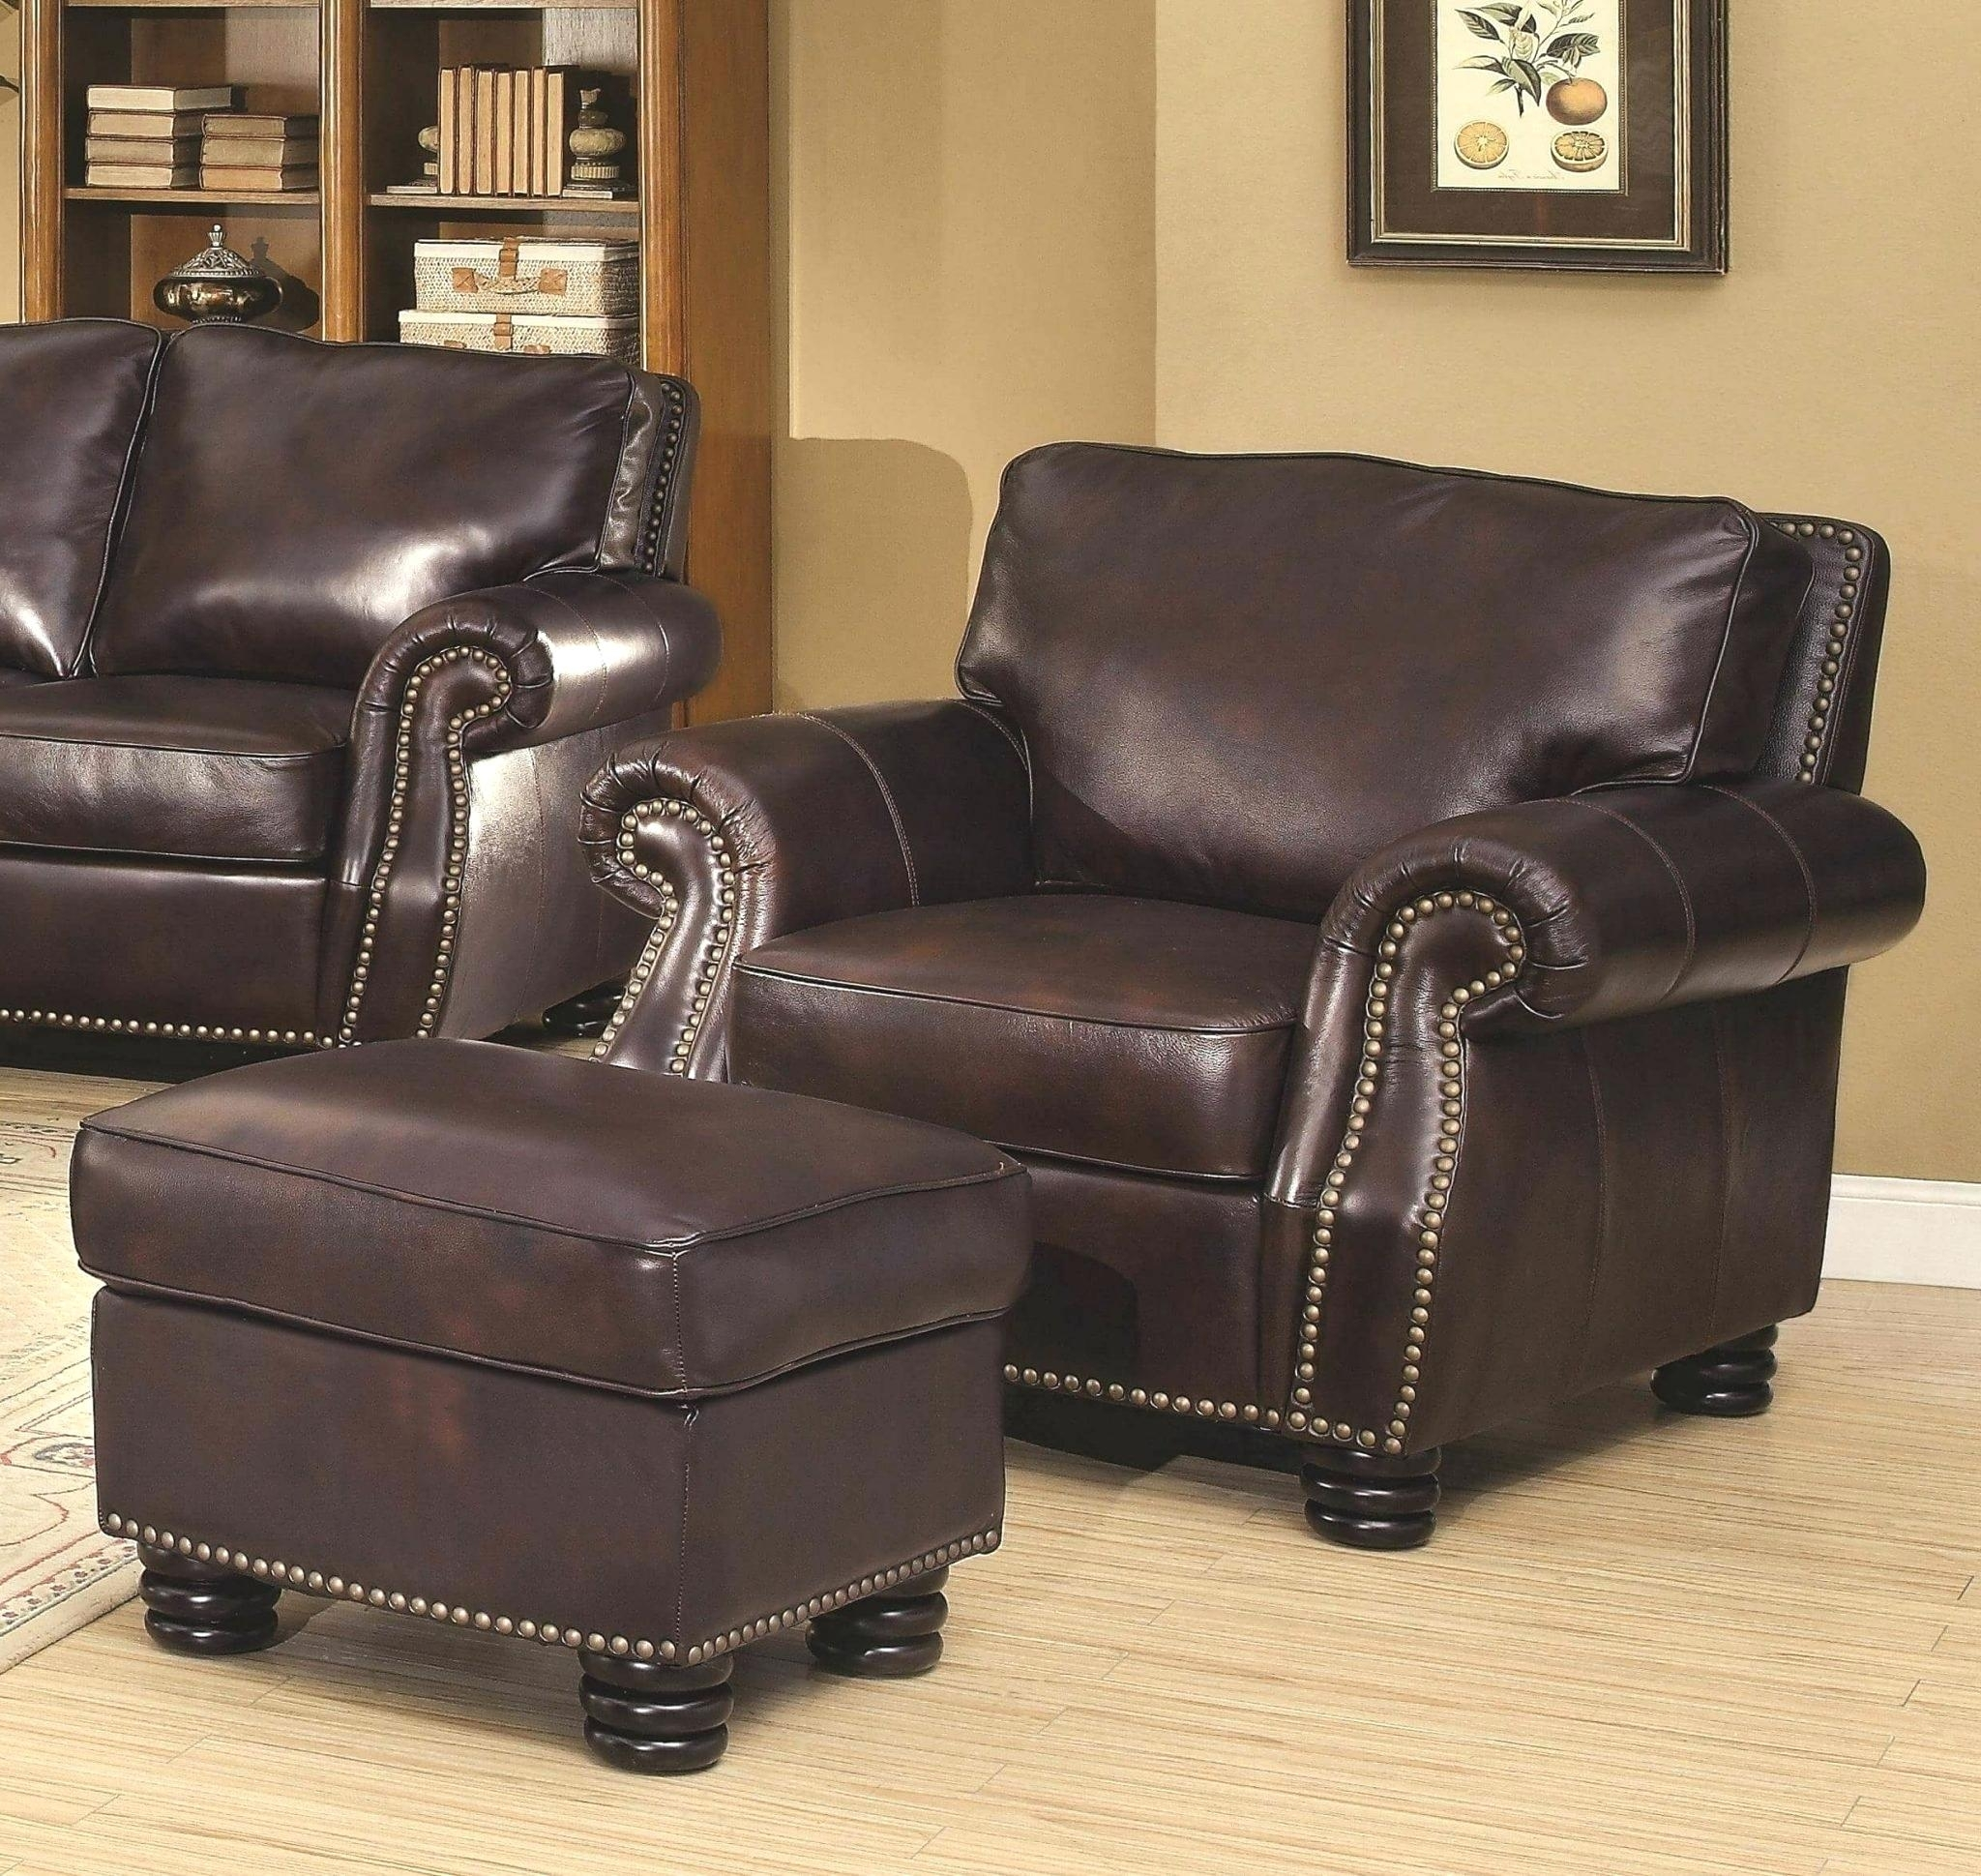 wingback recliners chairs living room furniture 15 collection of chairs with ottoman 25754